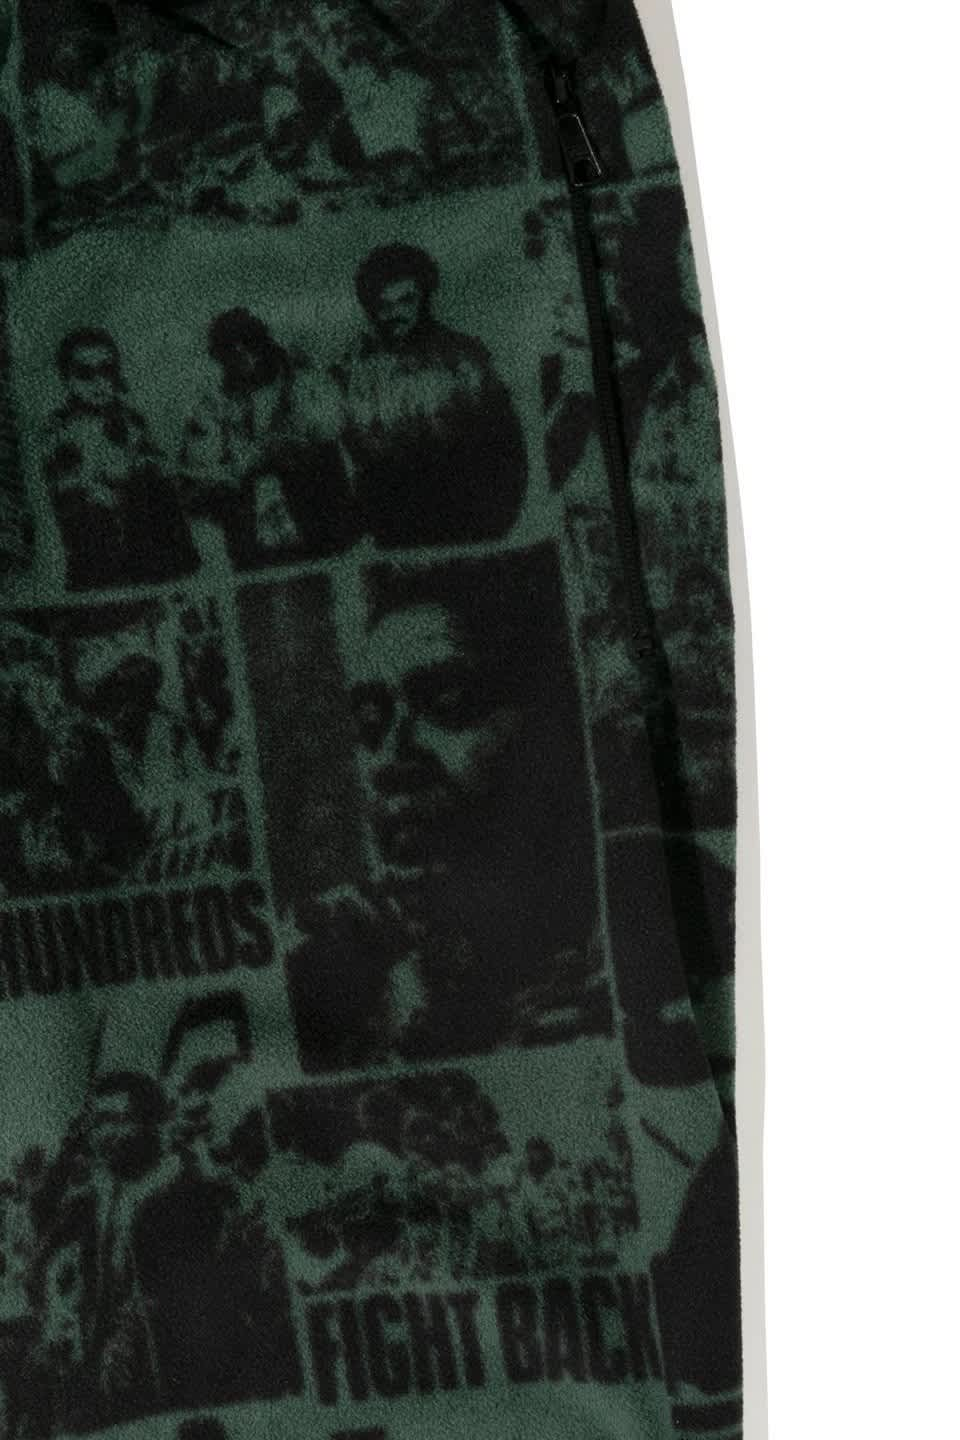 The Hundreds Resist Sweatpants - Hunter Green   Sweatpants by The Hundreds 2